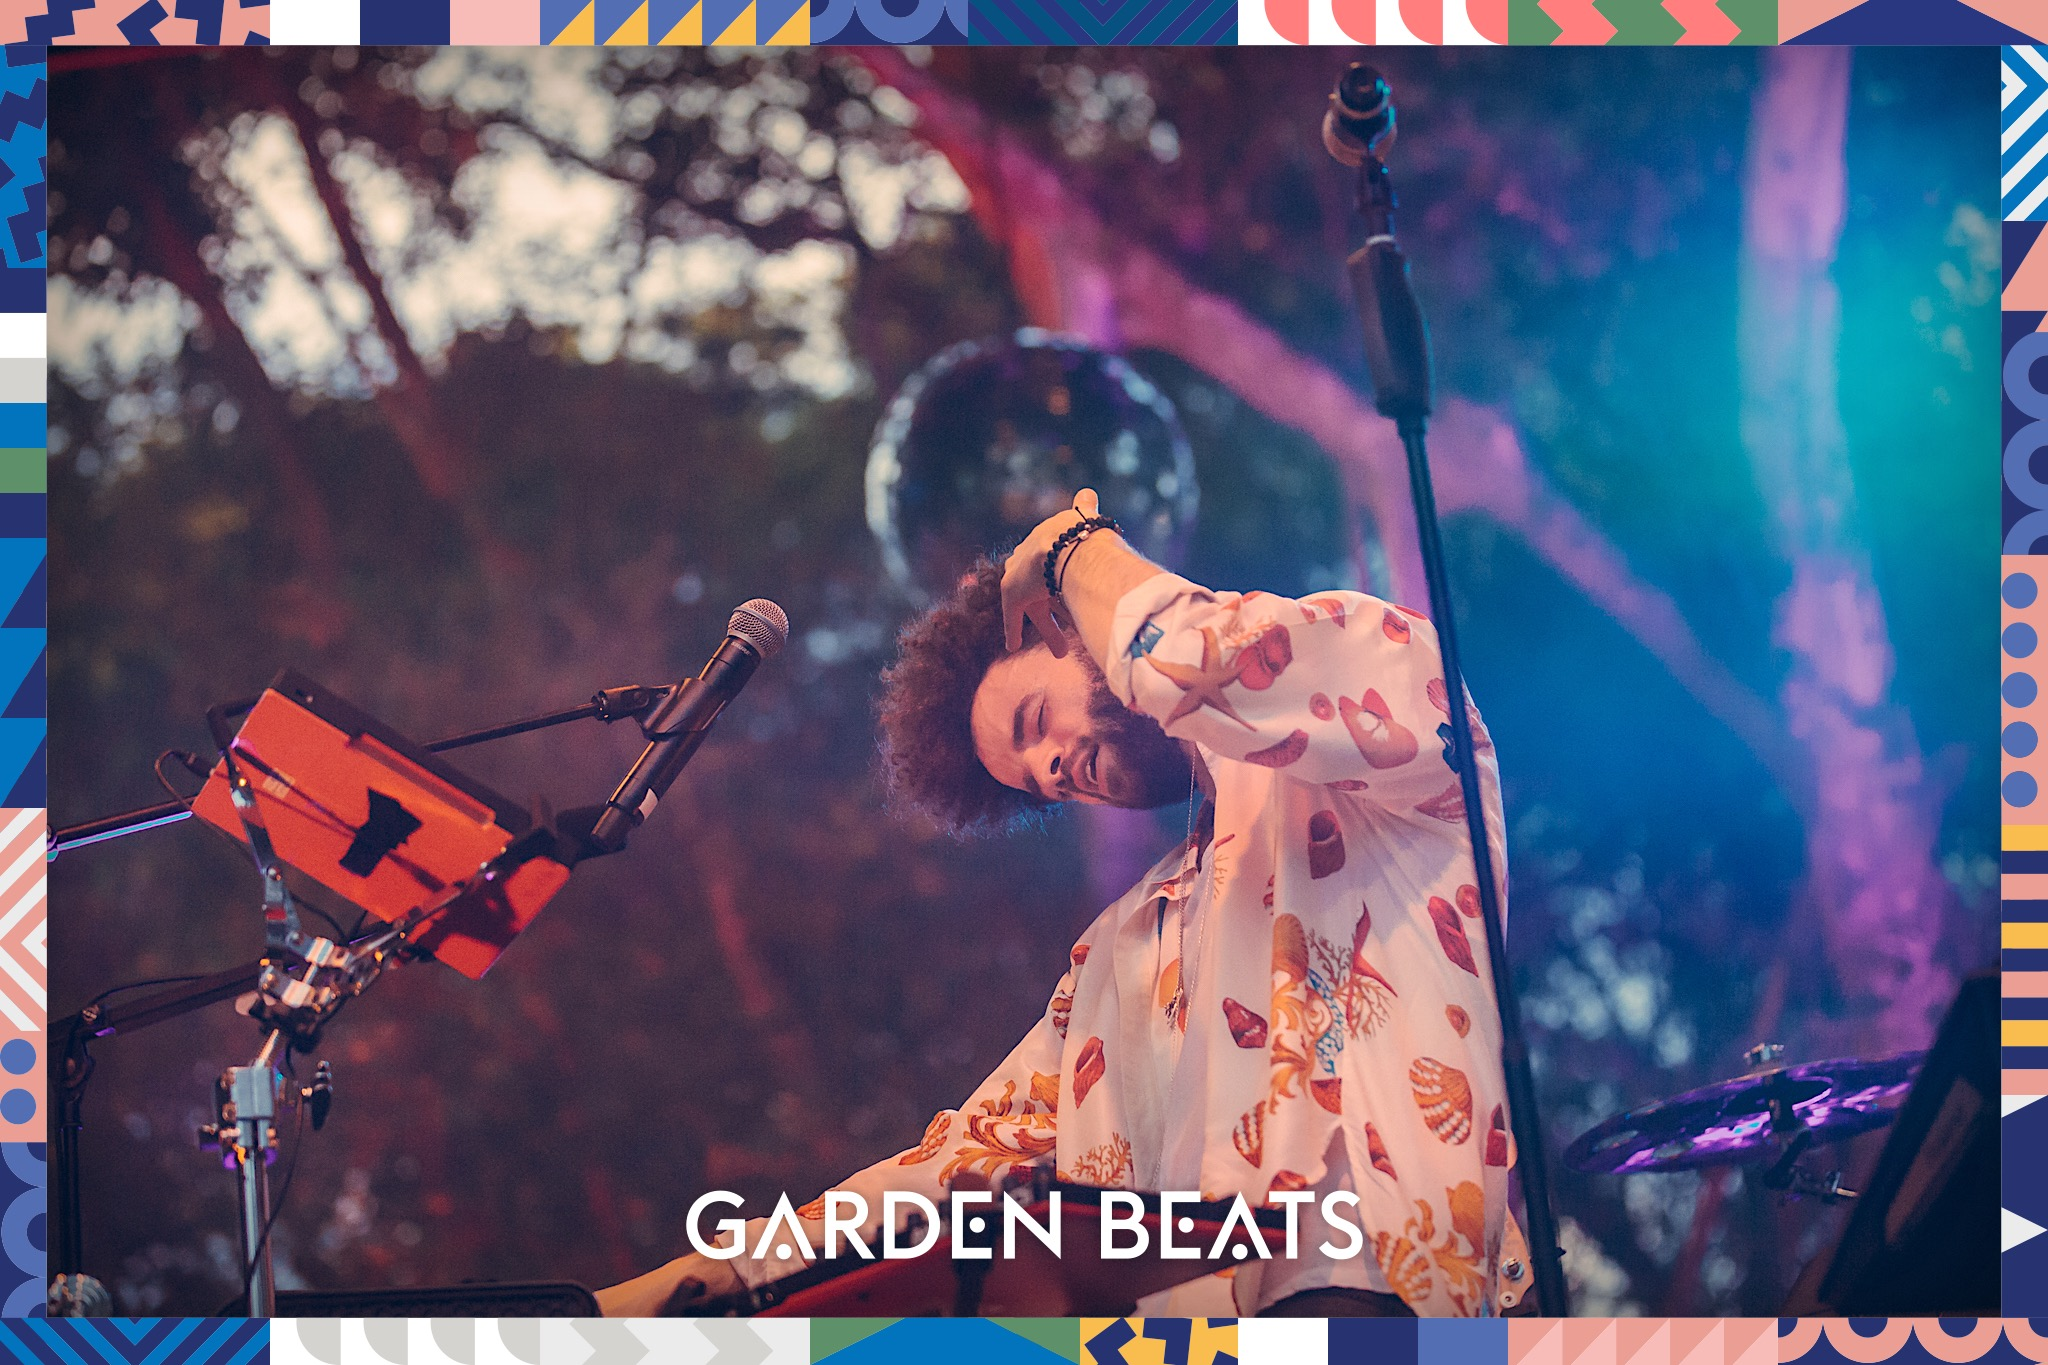 03032018_GardenBeats_Colossal750_Watermarked.jpg